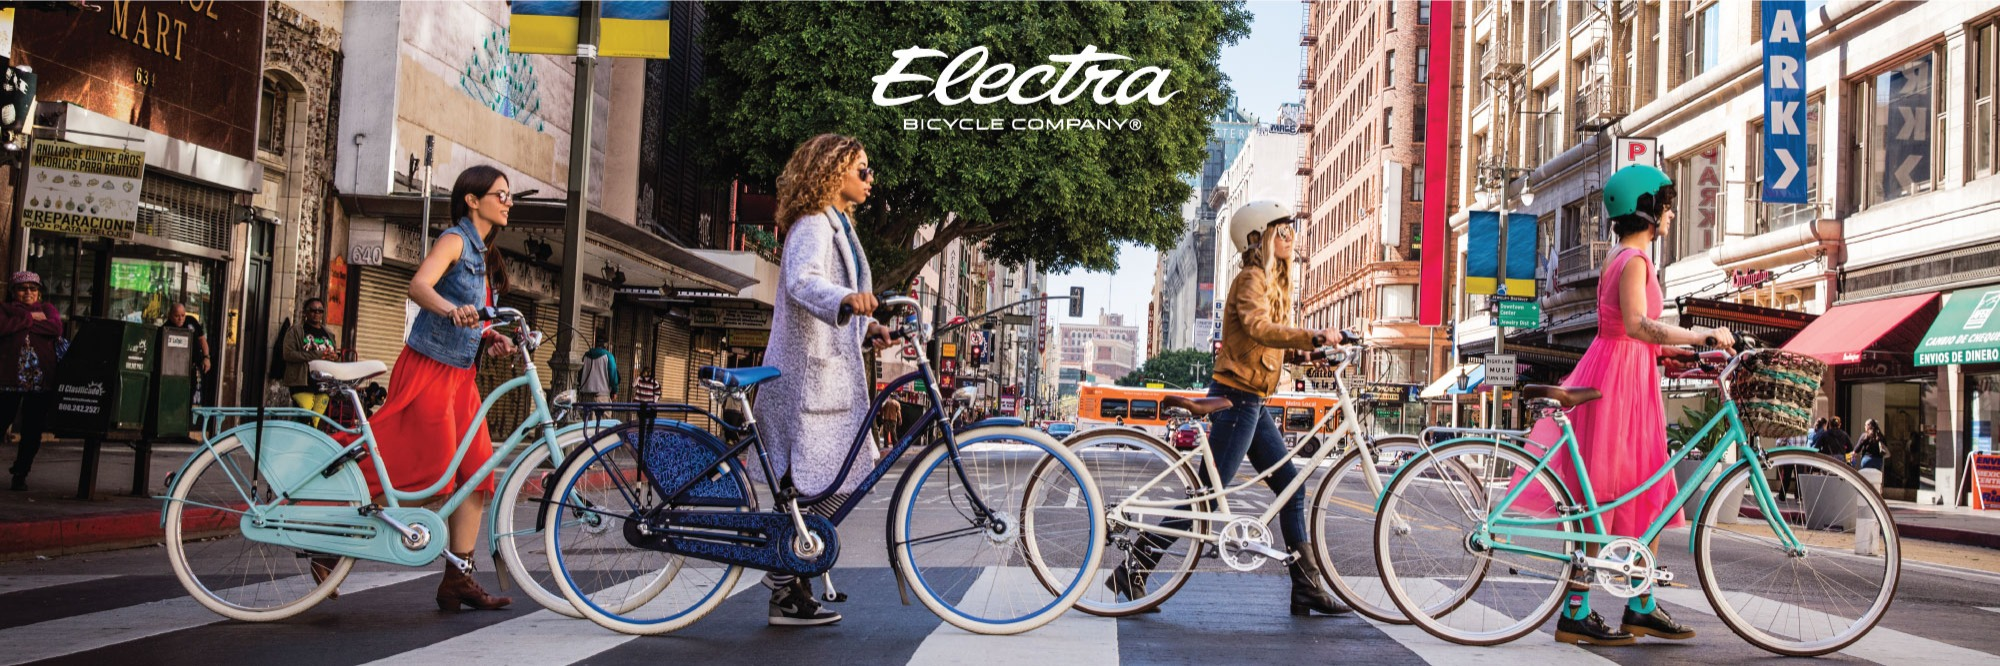 Electra Bicycle Company - Shop Electra Bikes